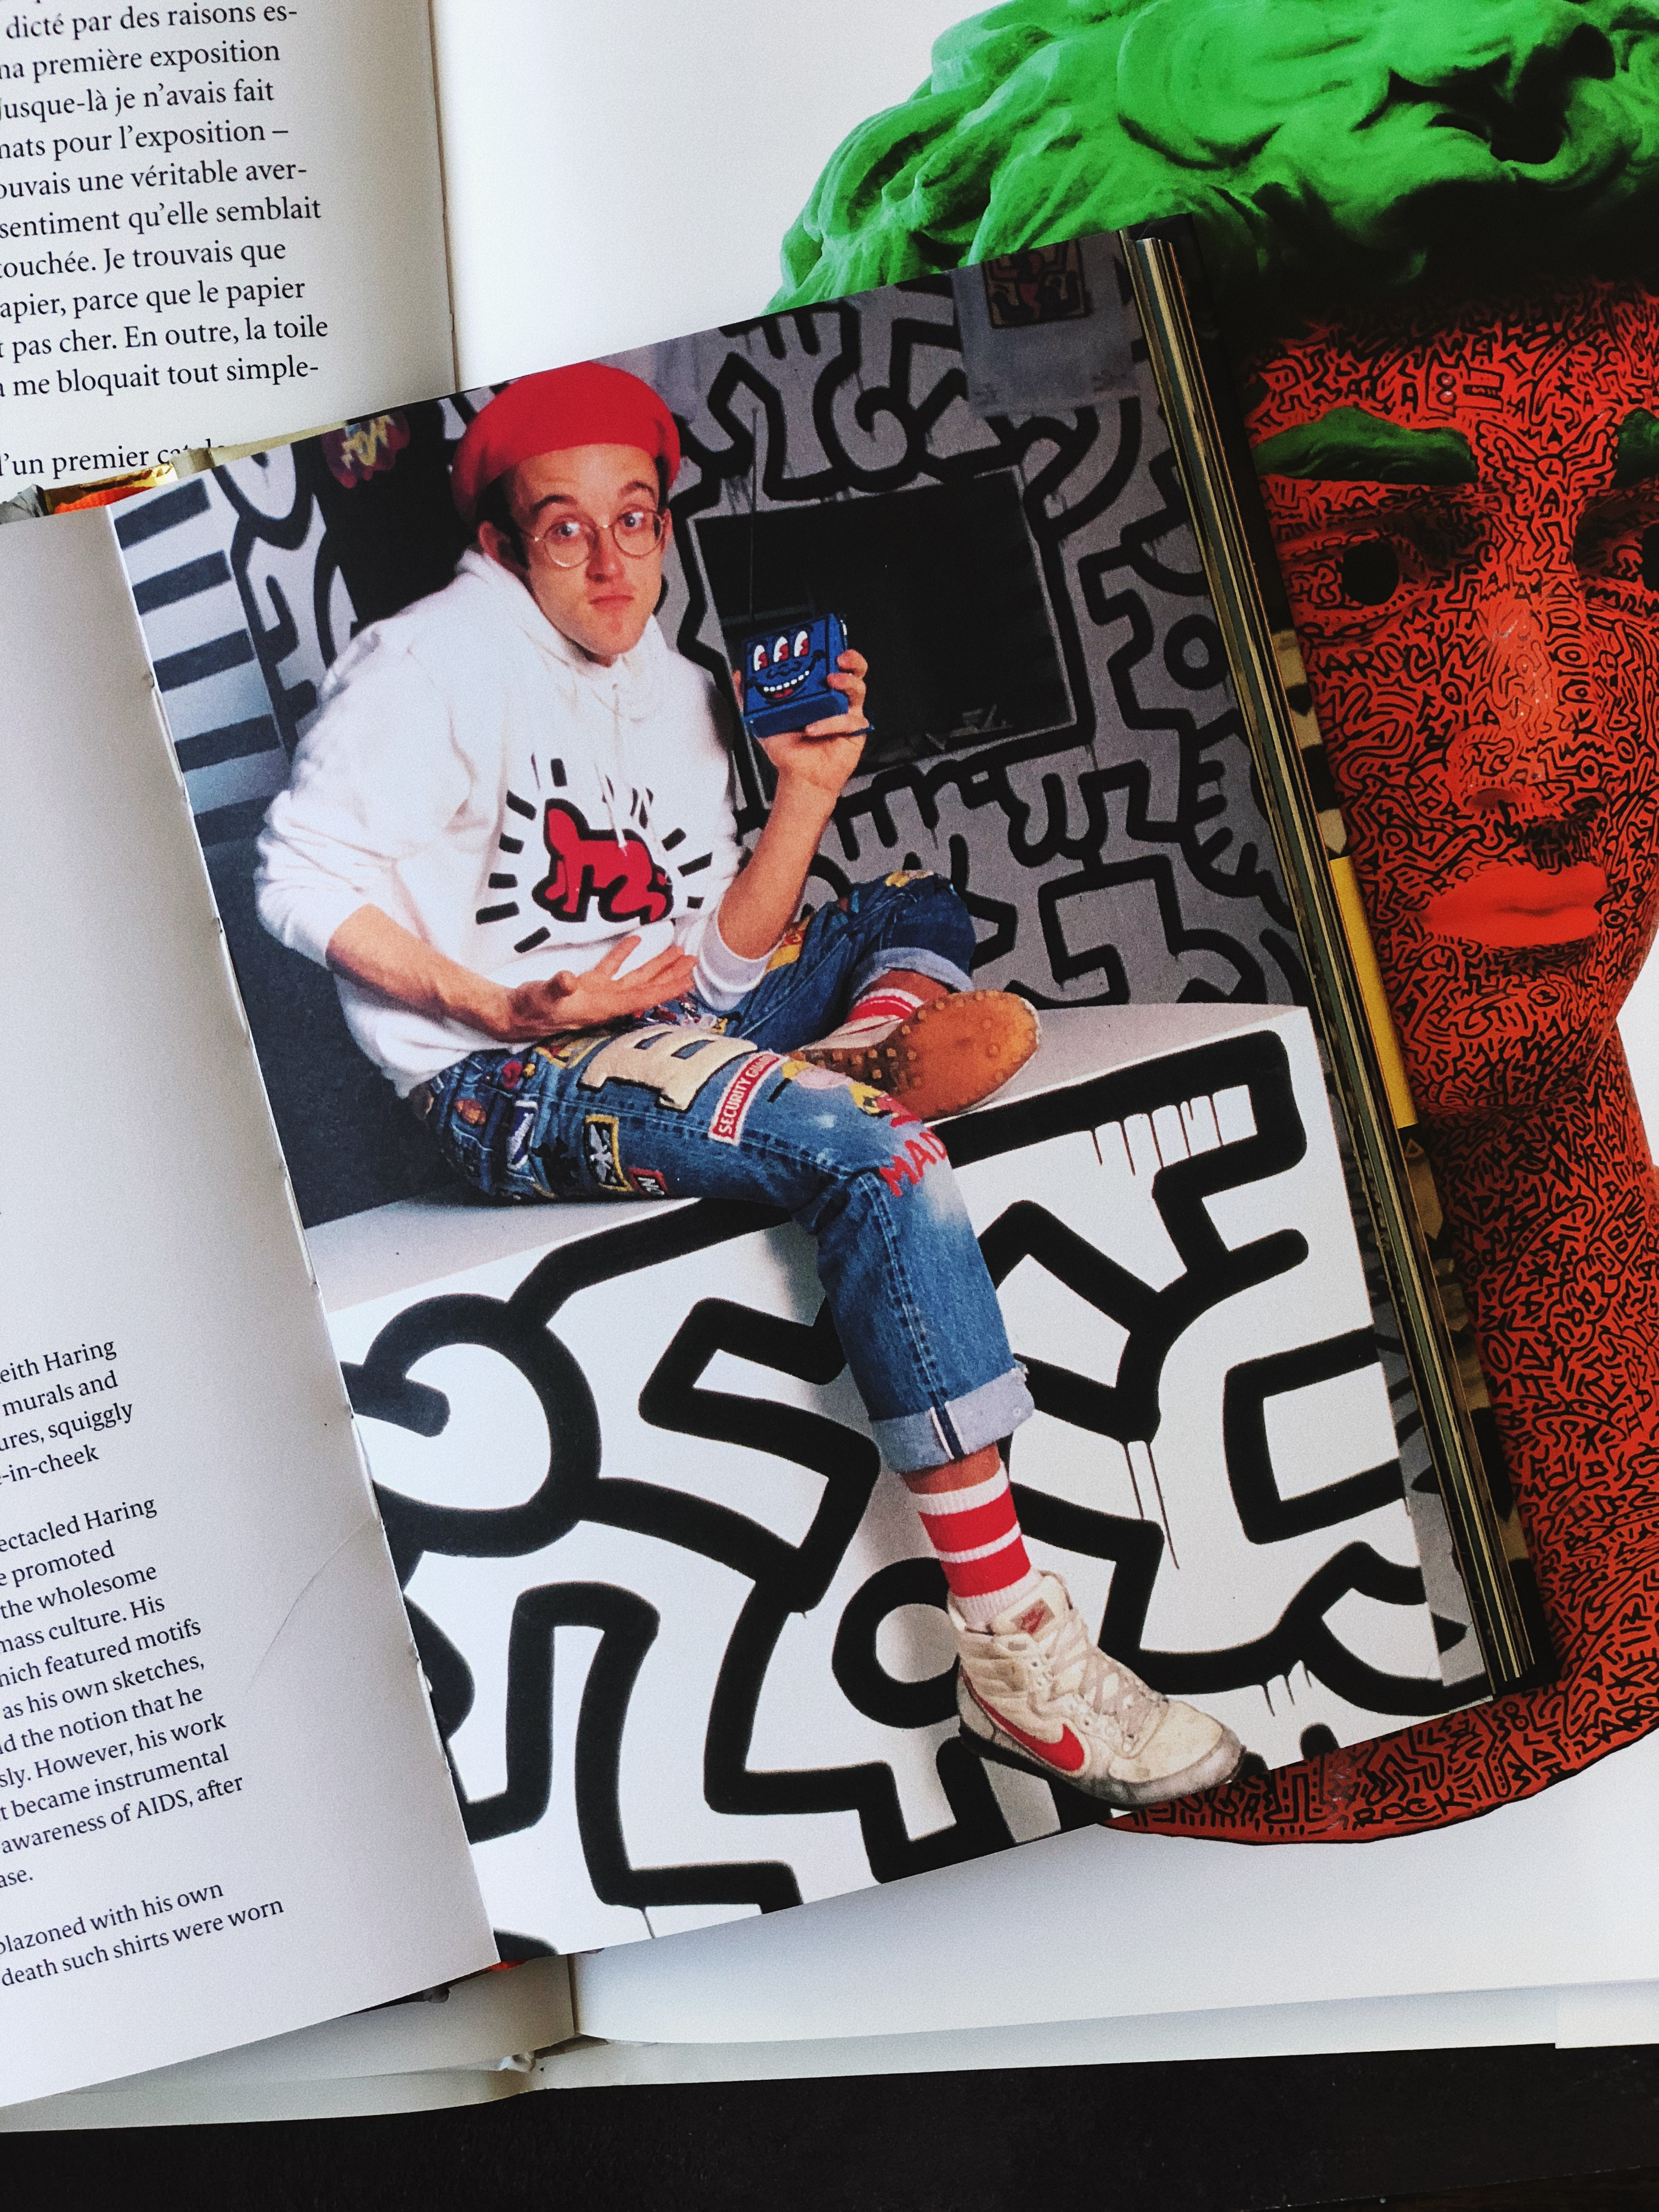 Keith Haring, from Sartorial: The Art of Looking Like an Artist, by Katerina Pantelides, published by Laurence King